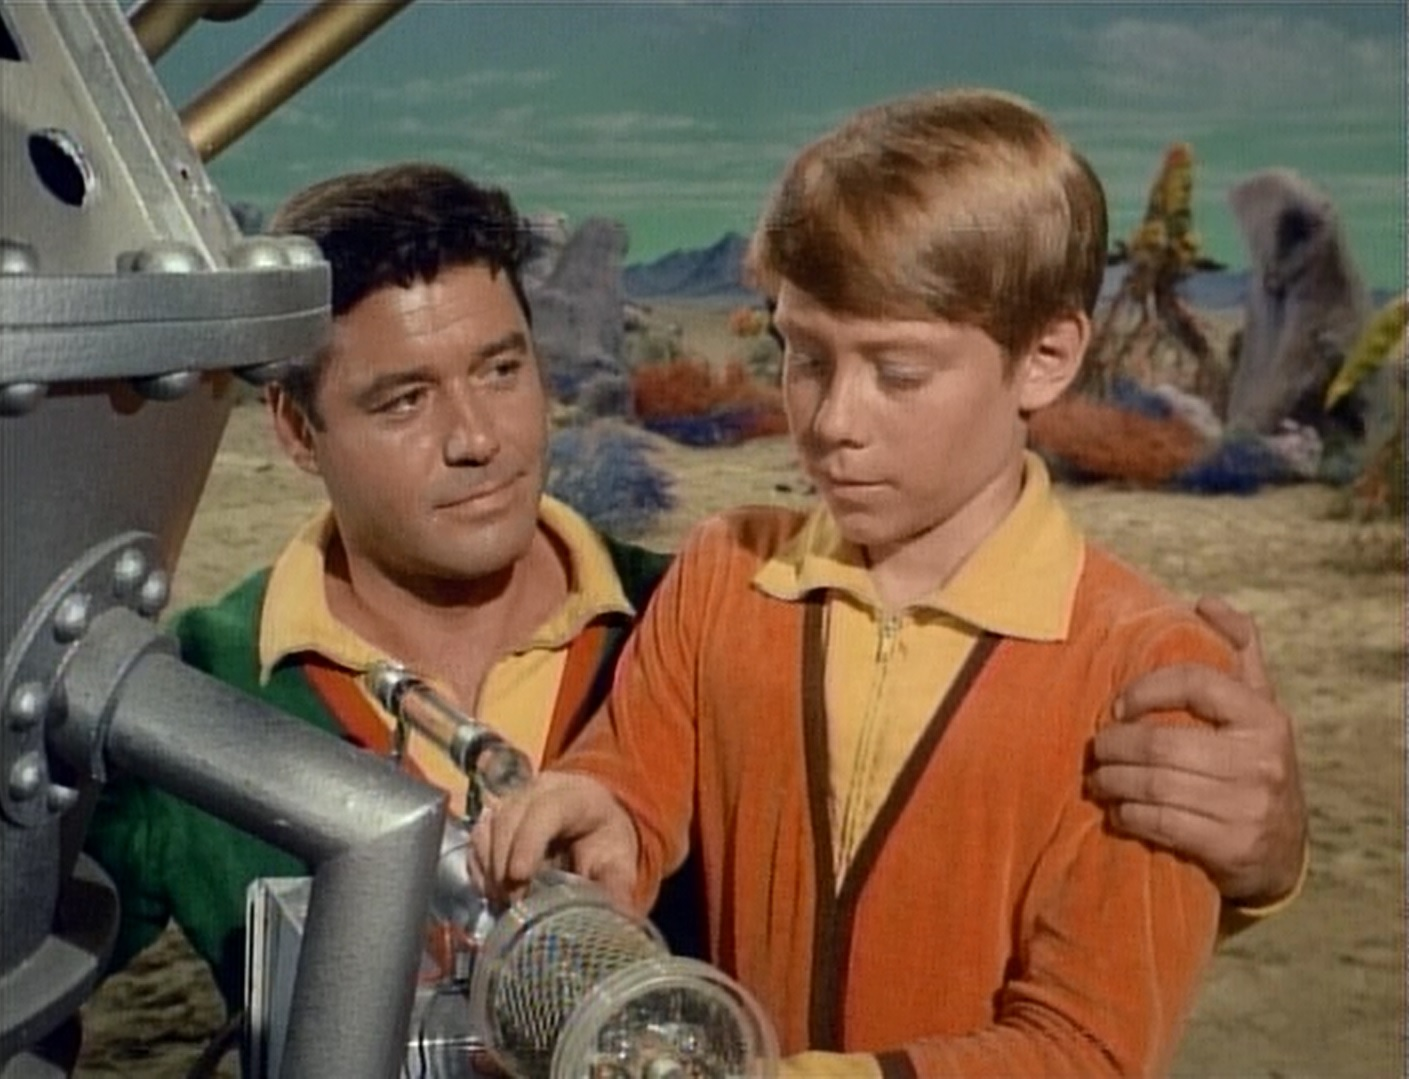 Lost in Space Episode 37: The Deadly Games of Gamma 6